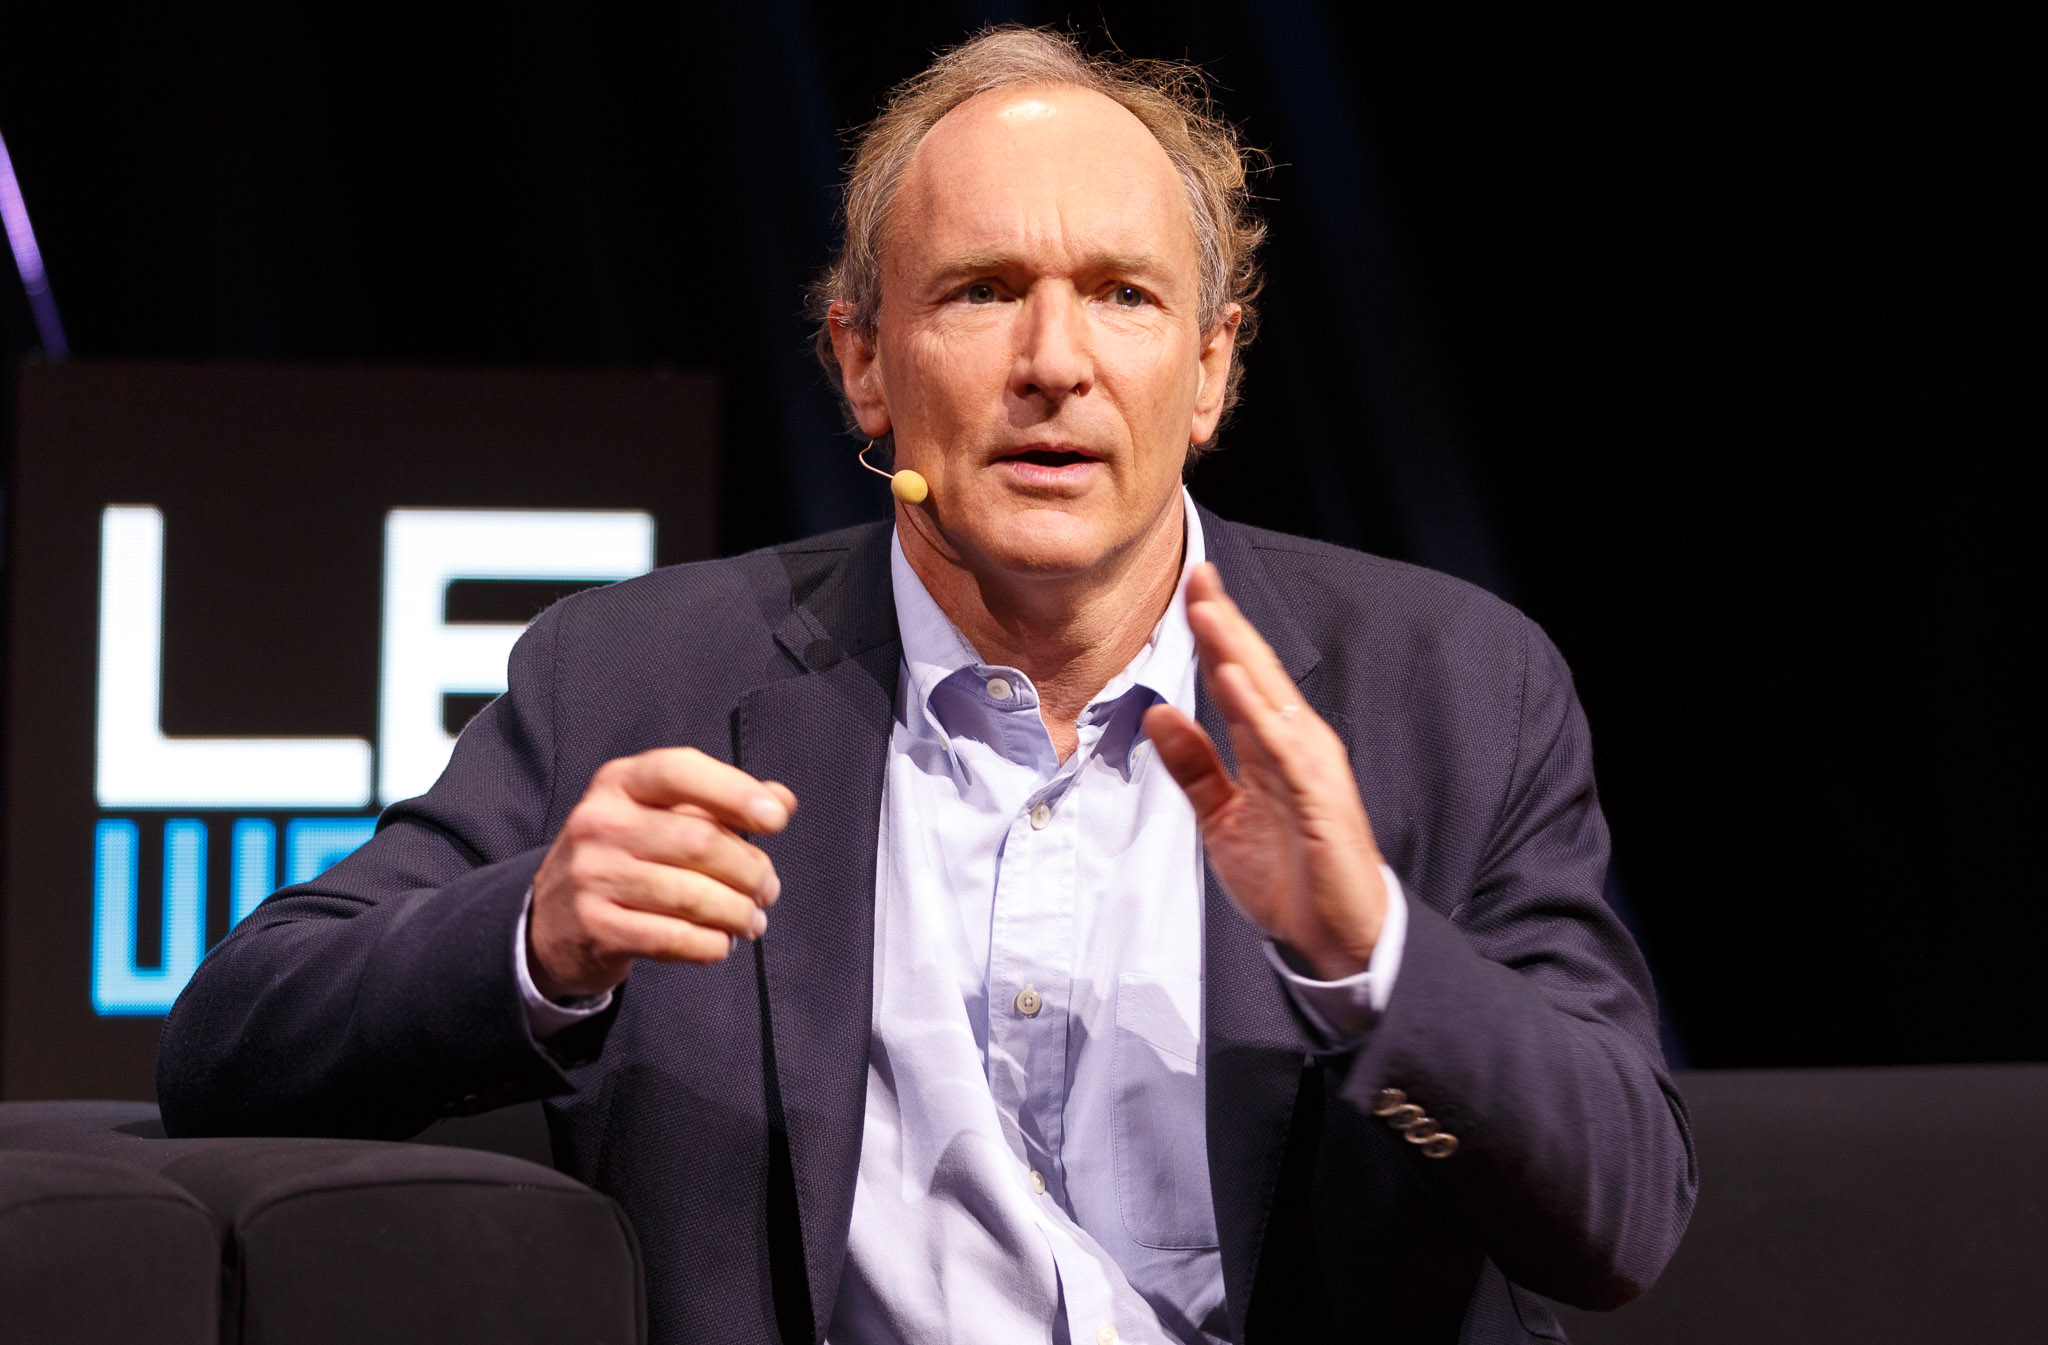 Web founder Tim Berners-Lee made an easy $5 million